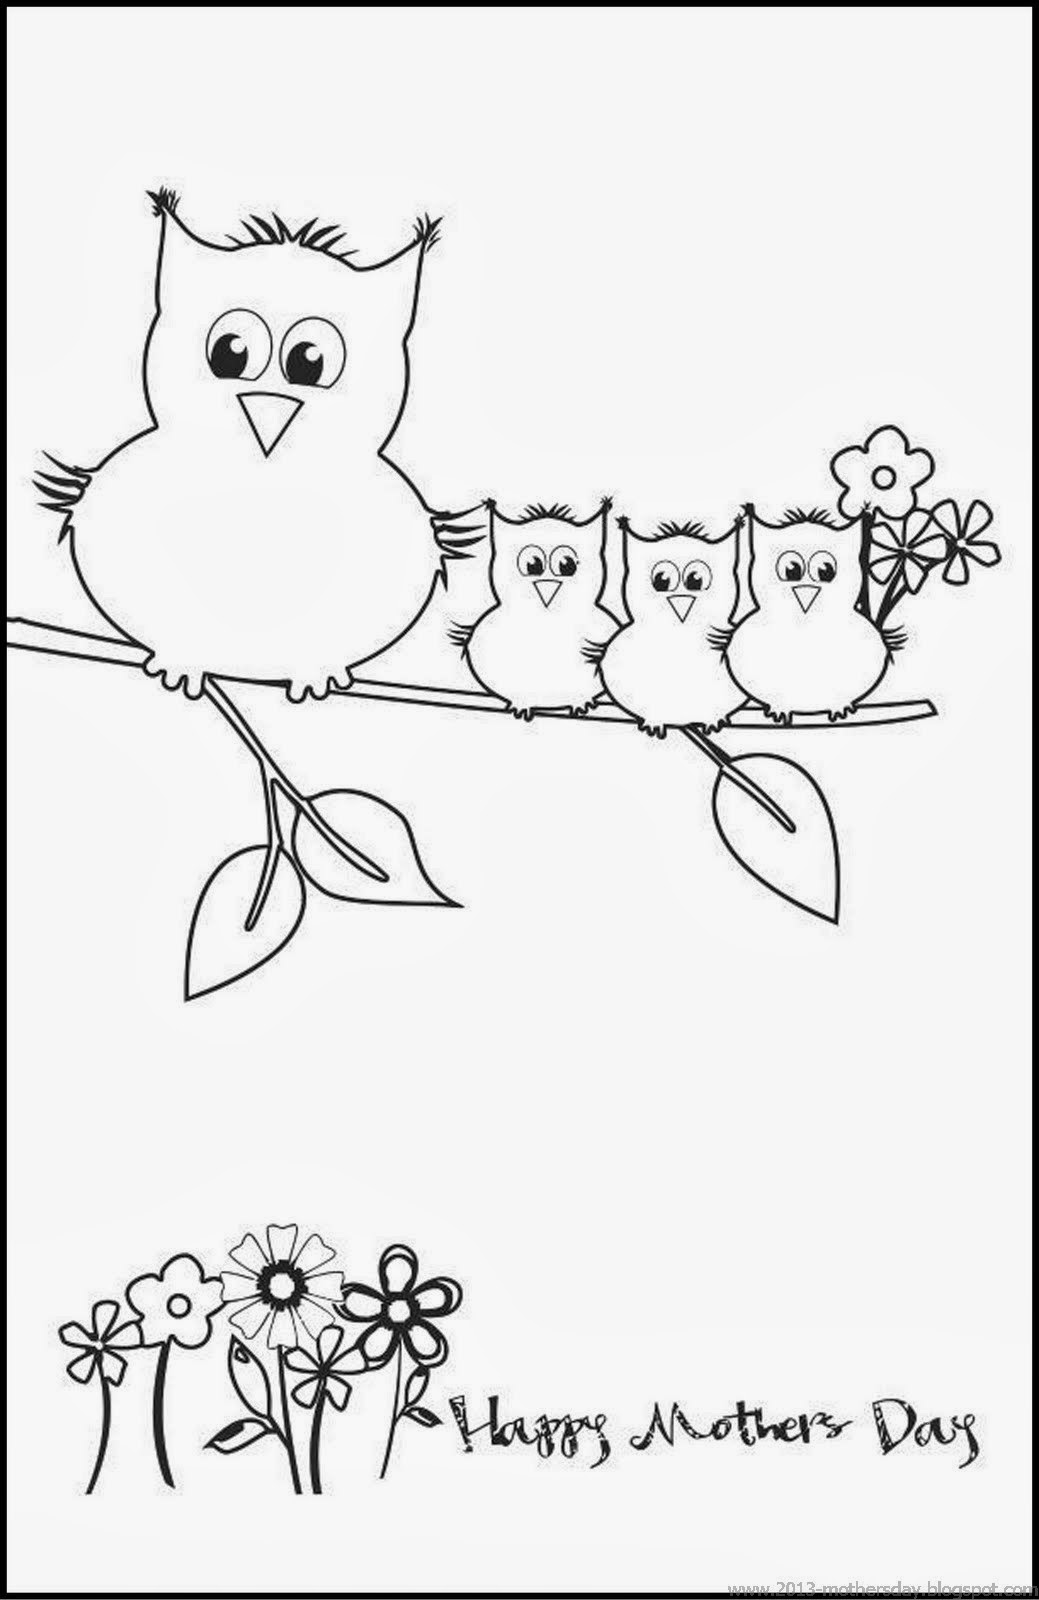 Thank You For Your Service Coloring Pages At Getdrawings Com Free